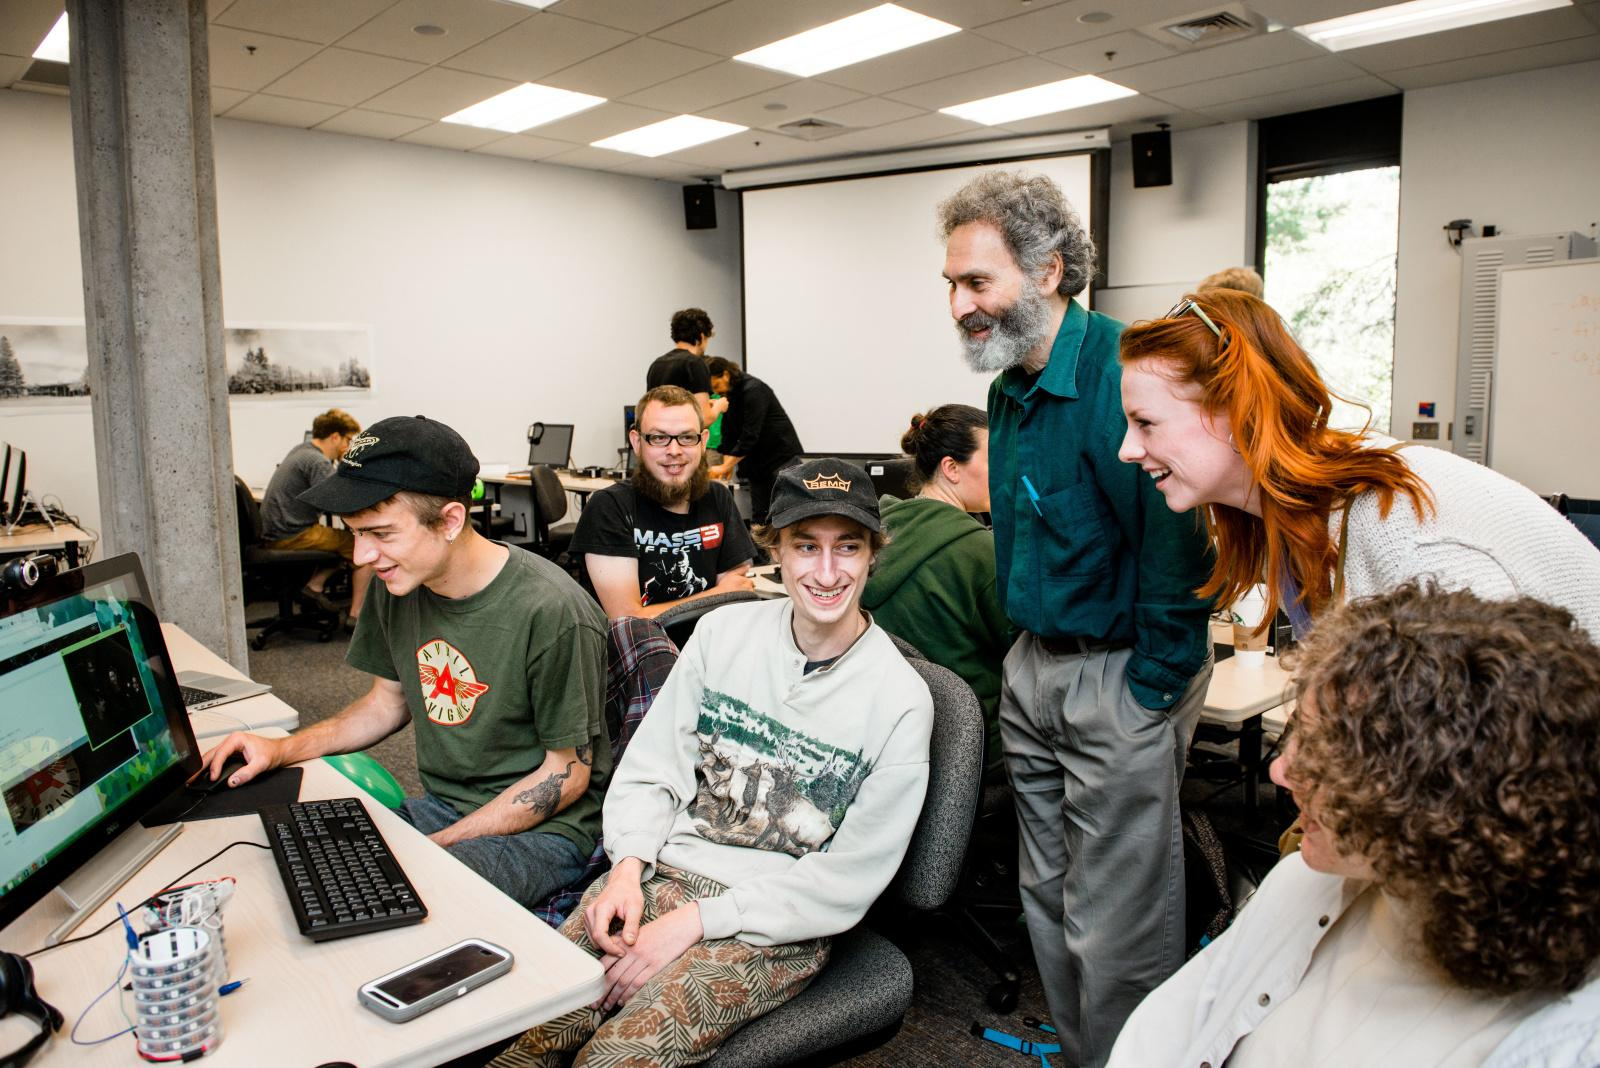 Evergreen faculty member Richard Weiss shares a laugh with students in August 2016. (photo: Shauna Bittle/Evergreen)